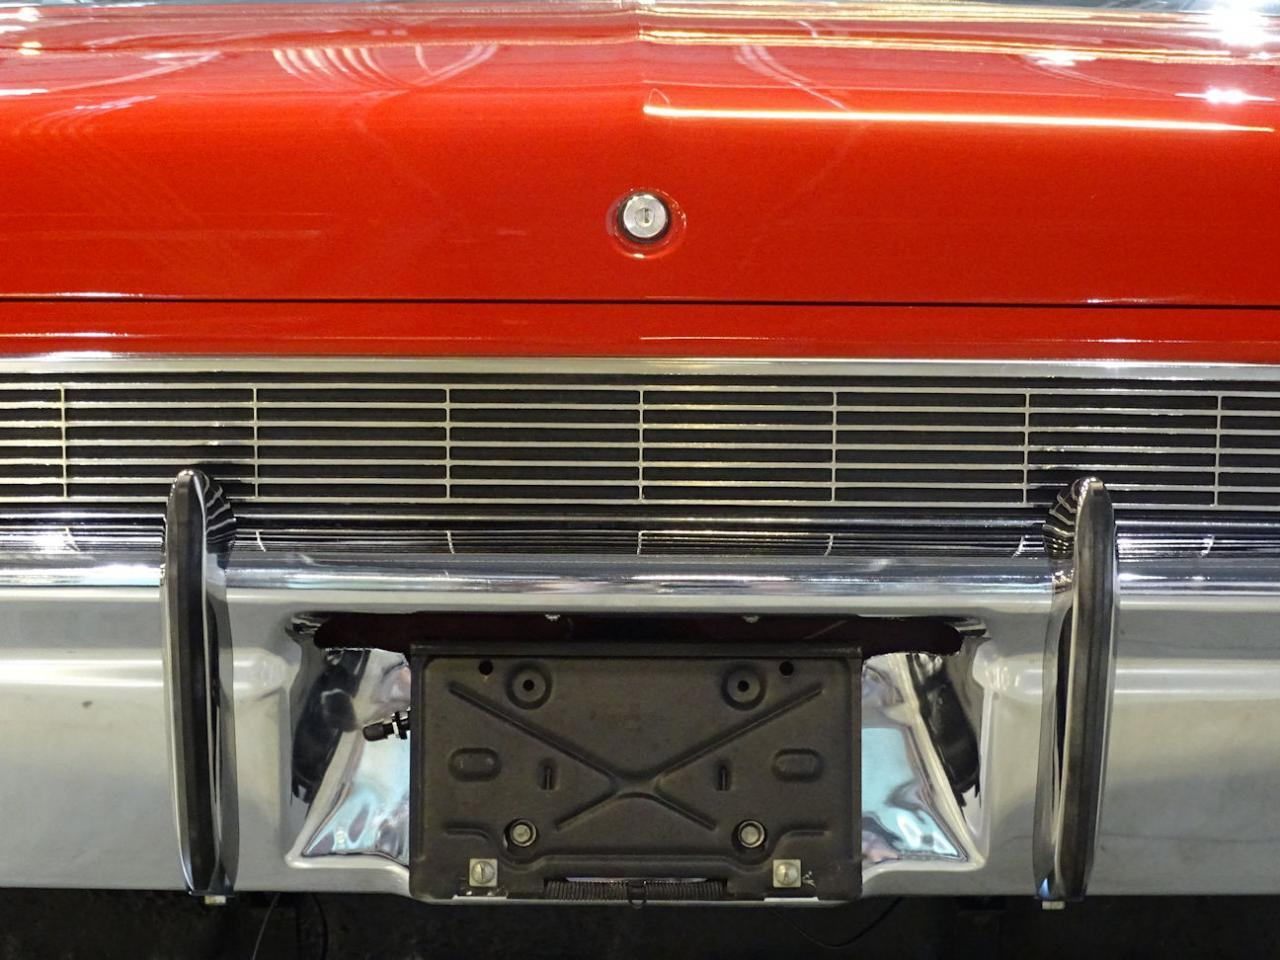 Large Picture of Classic '70 Chevrolet Nova - $26,995.00 Offered by Gateway Classic Cars - Orlando - MEMB